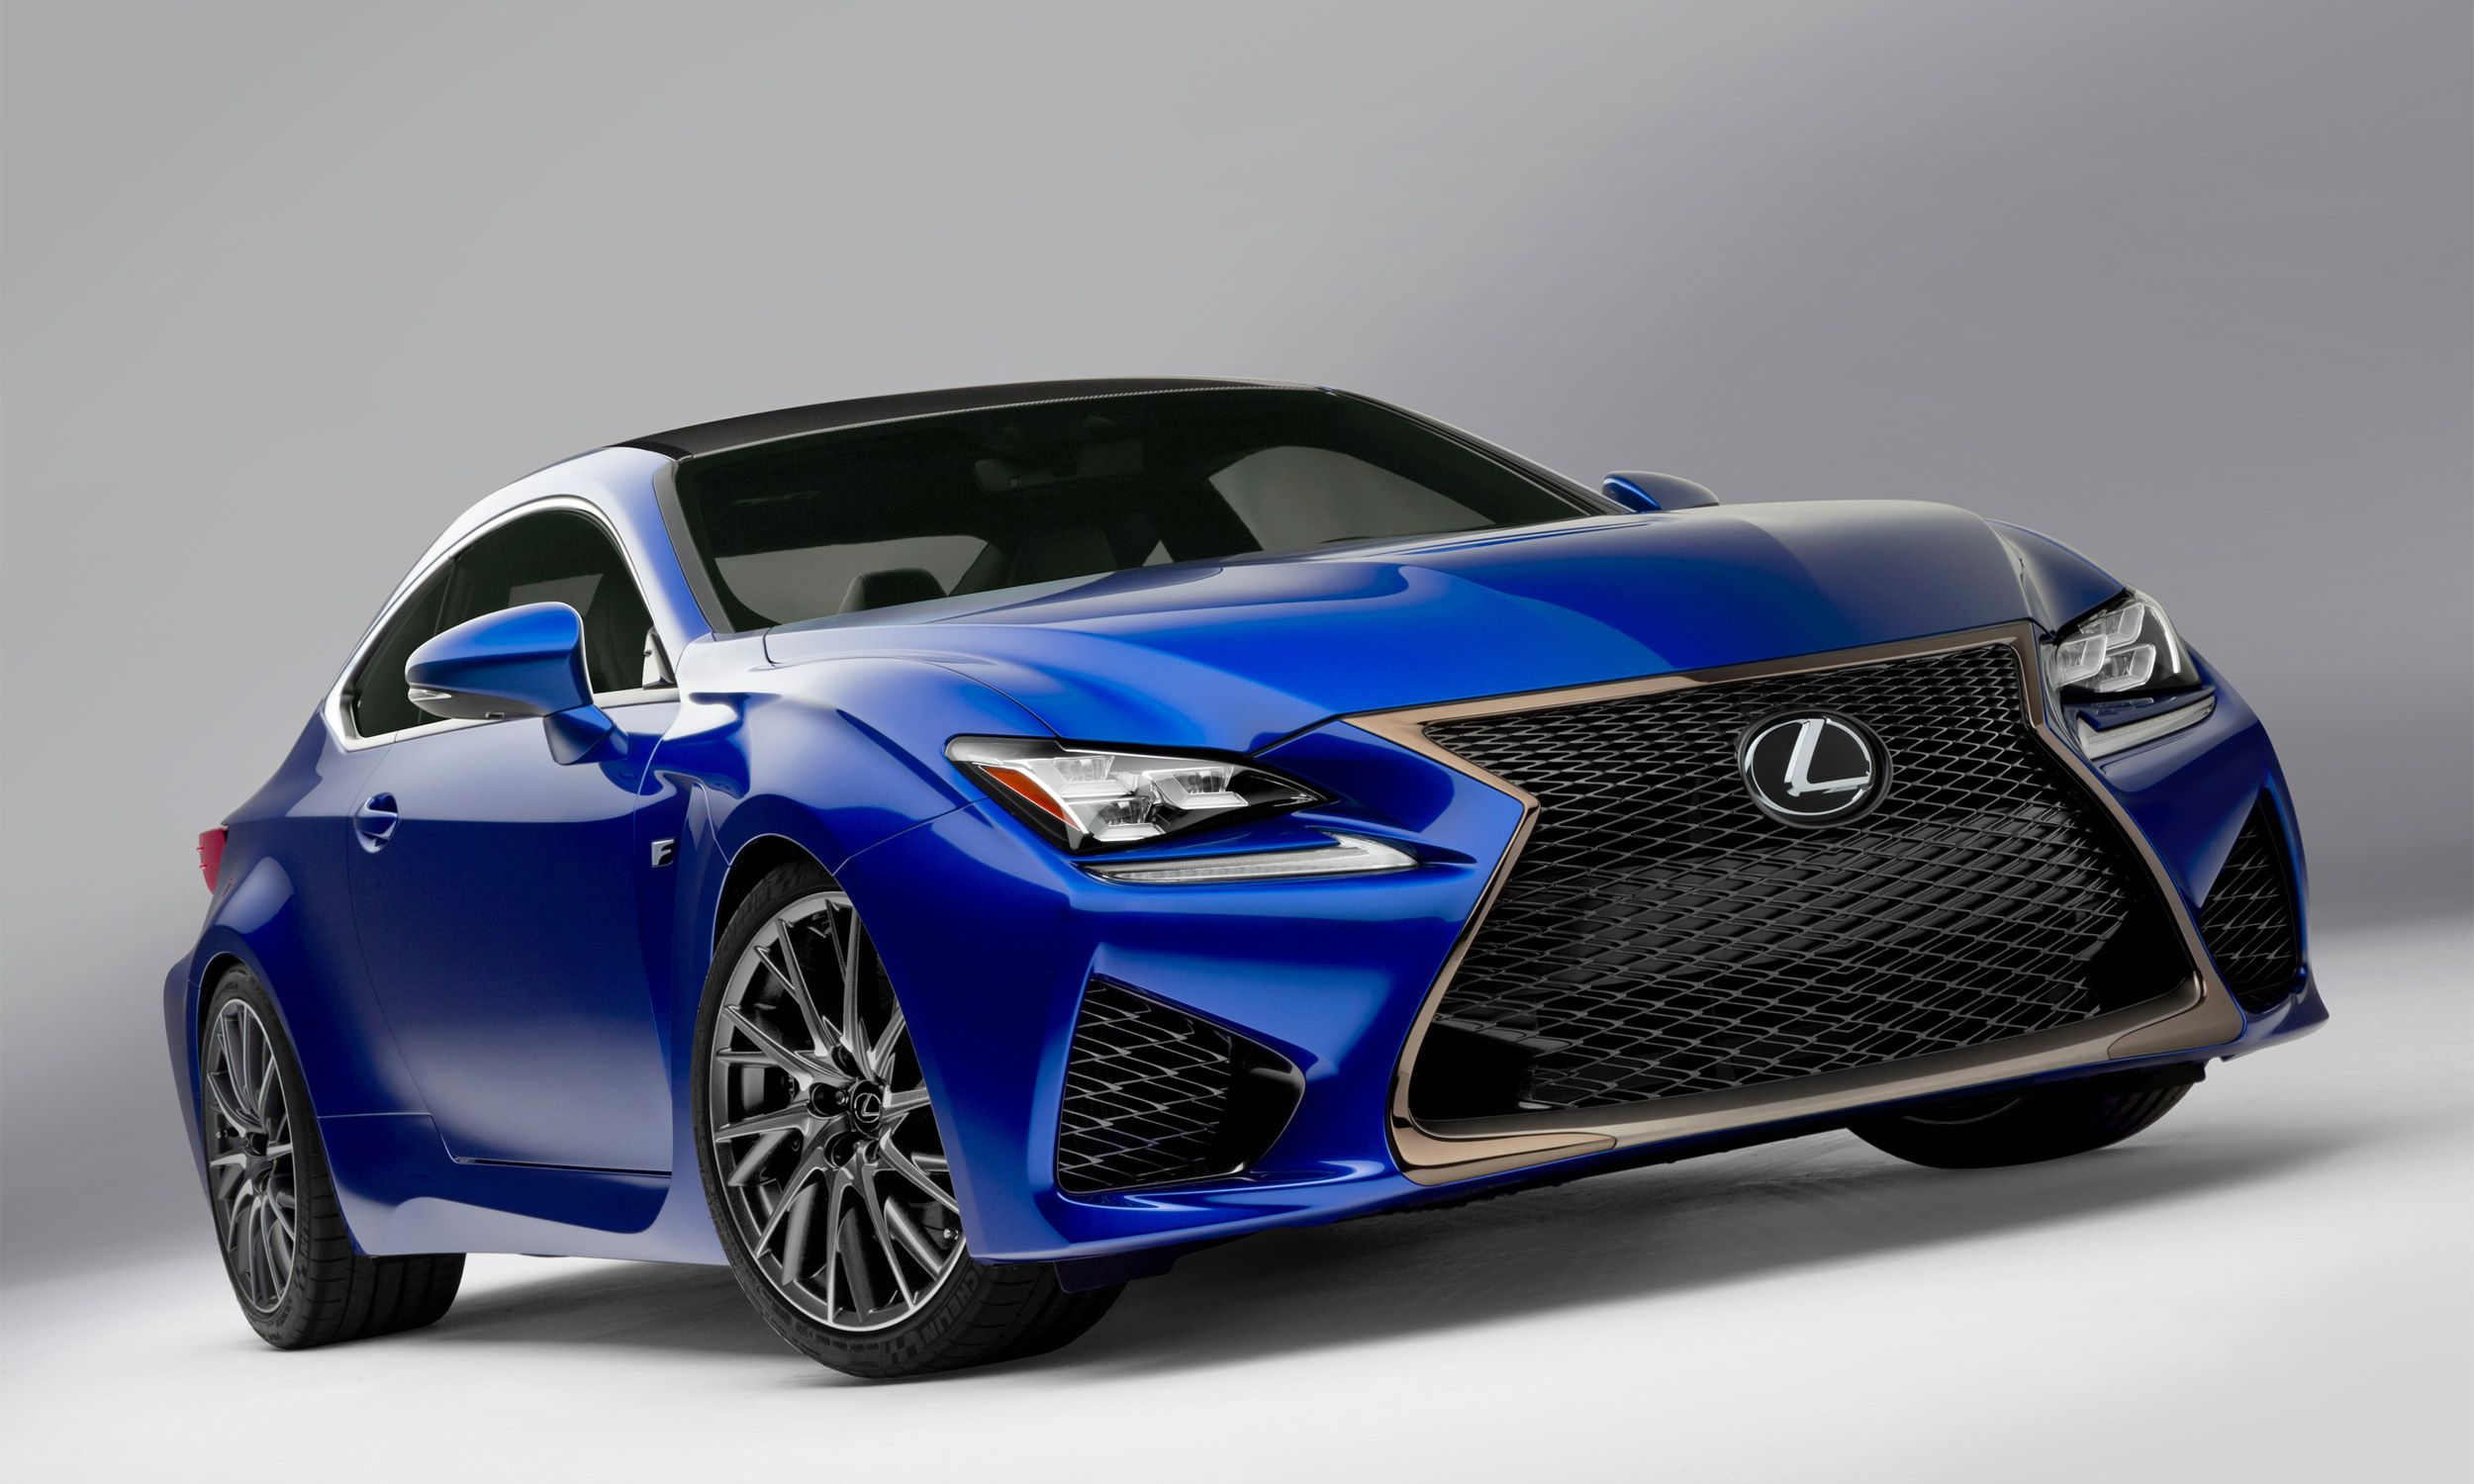 2015 Lexus RC F First look Lexus cars, Lexus sport, New